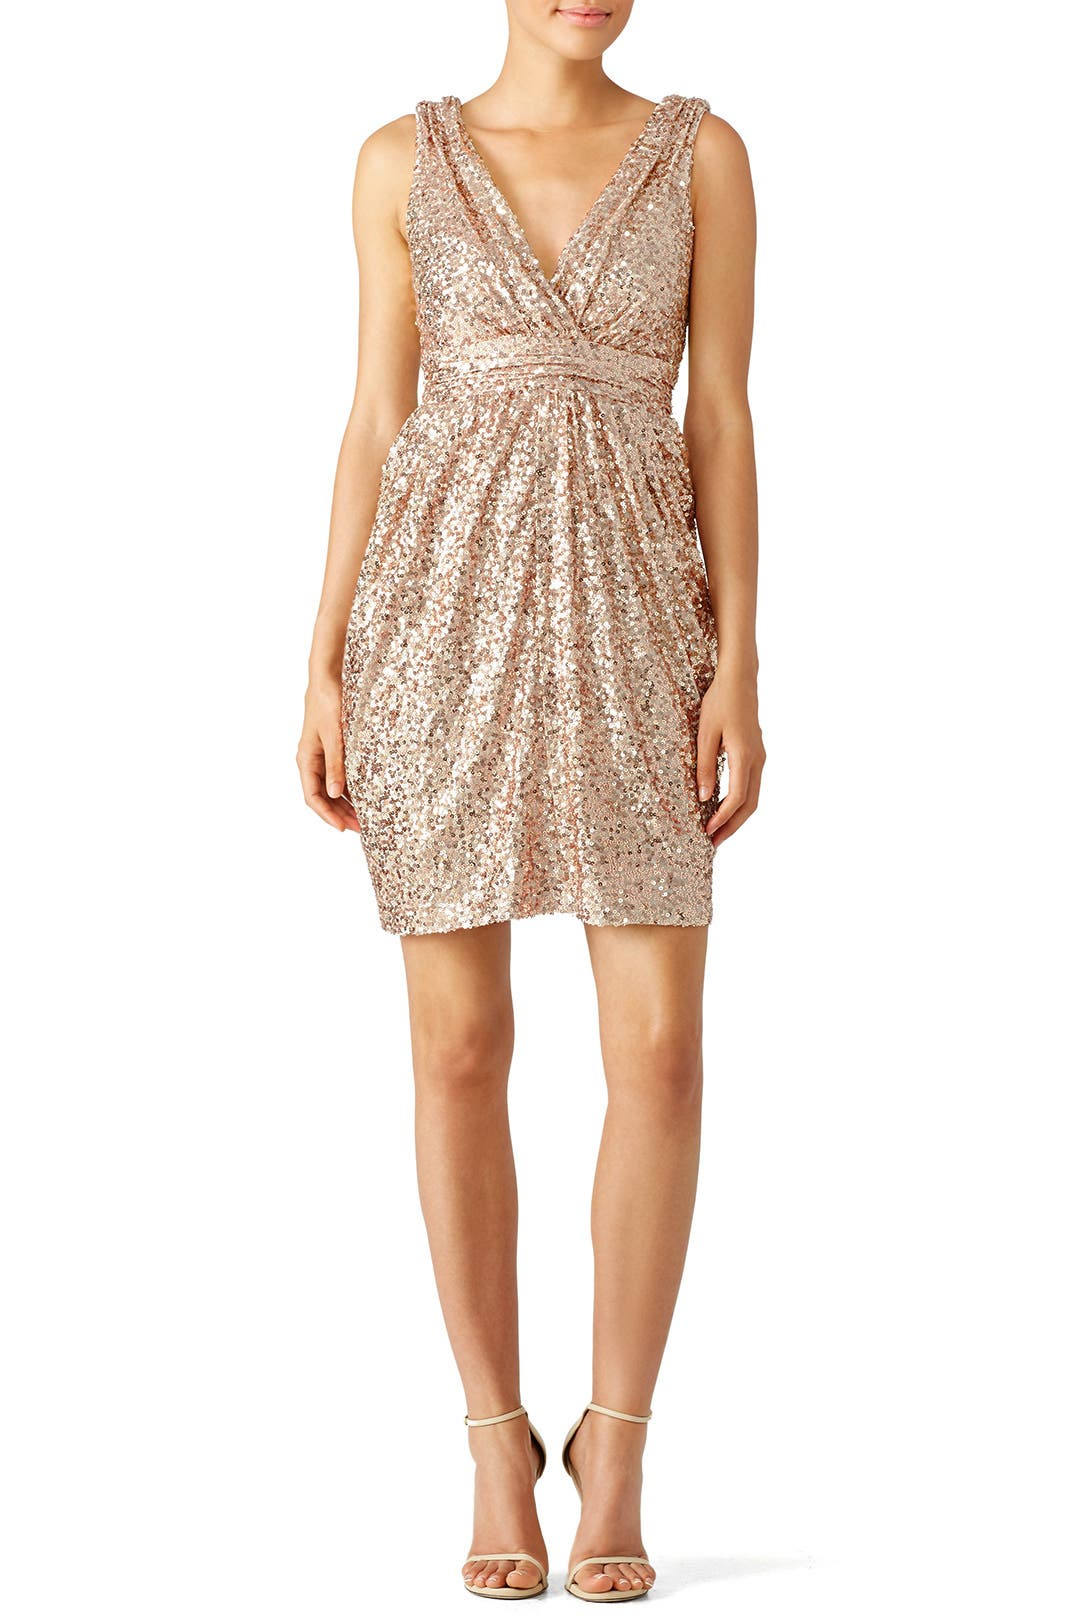 Fifth Avenue Showstopper Dress by Badgley Mischka